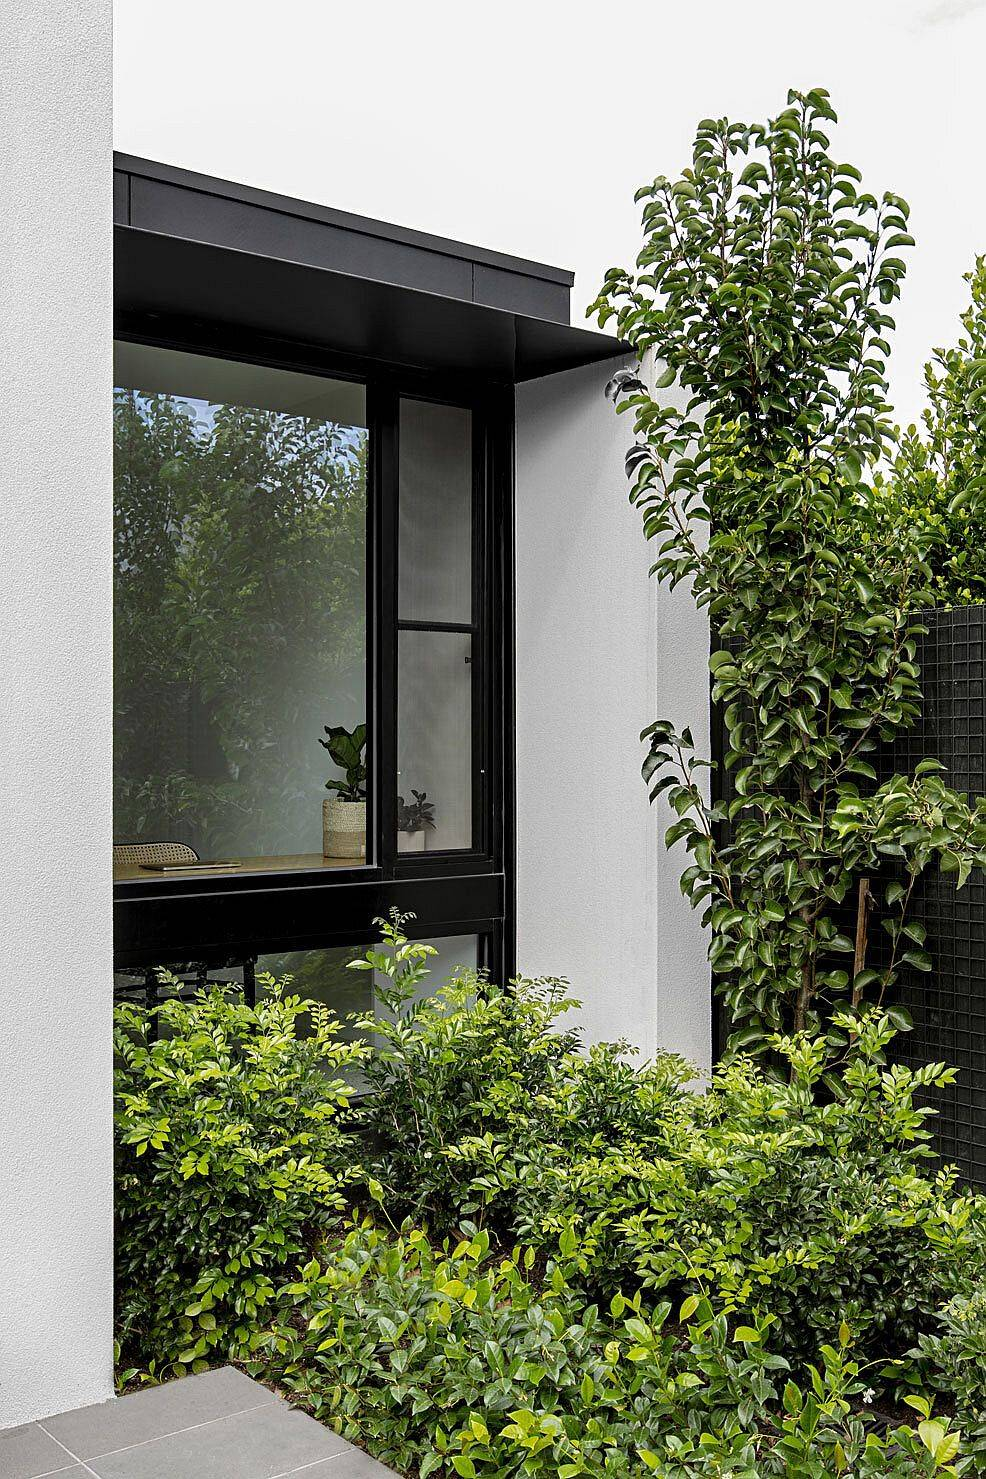 Greenery-outside-the-house-becomes-a-part-of-teh-work-area-thanks-to-large-glass-walls-93850